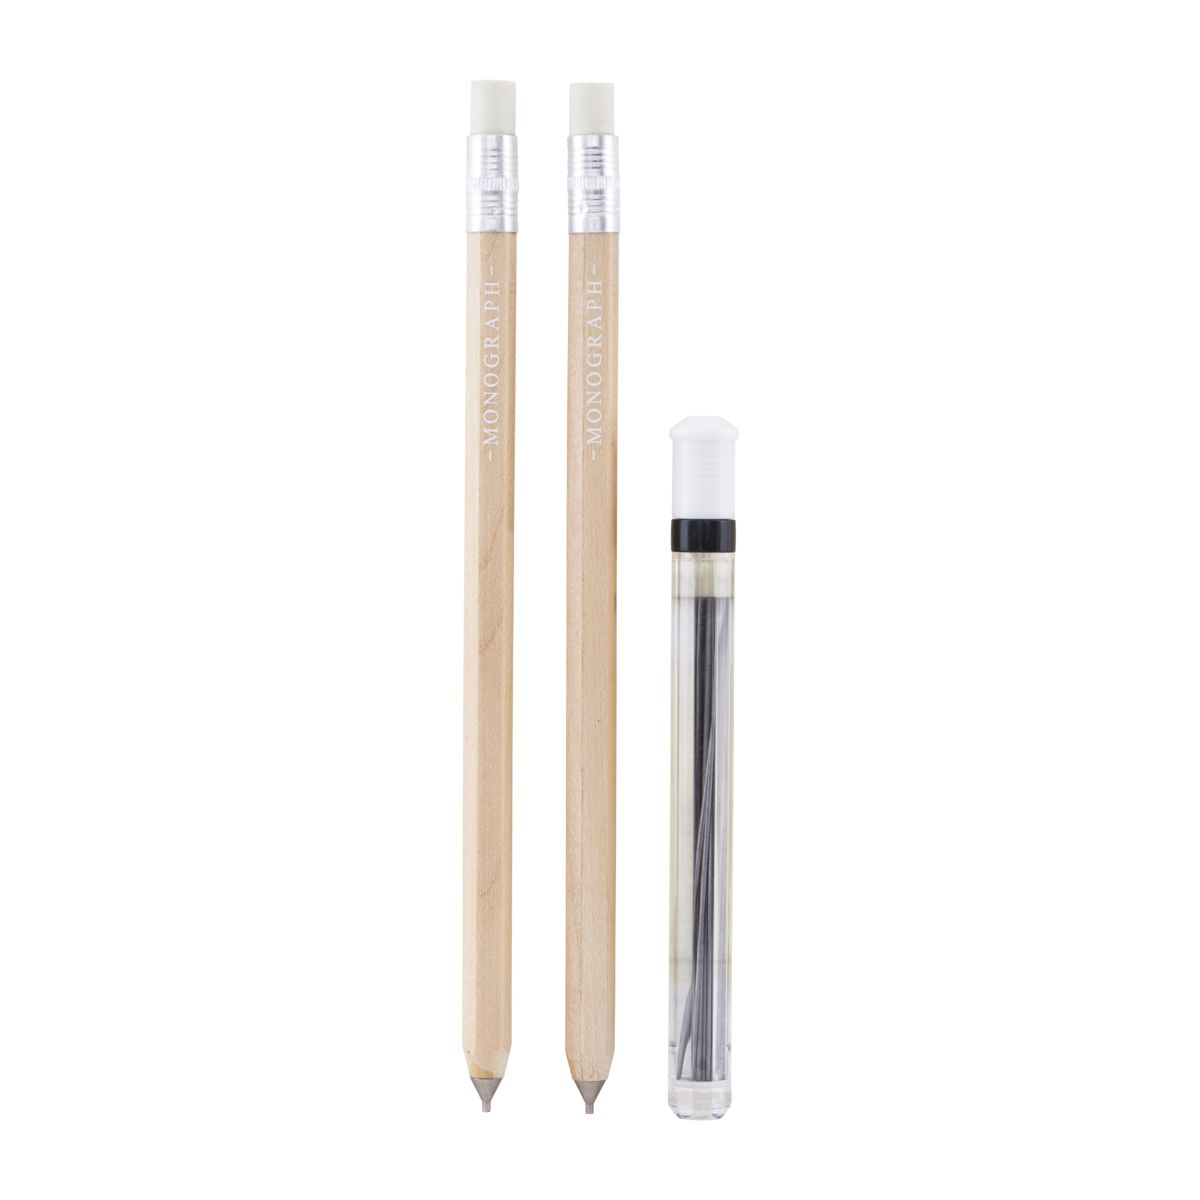 Image of   House Doctor Monograph Stiftblyant, Wood, stift 0,5 mm, 2 stk.